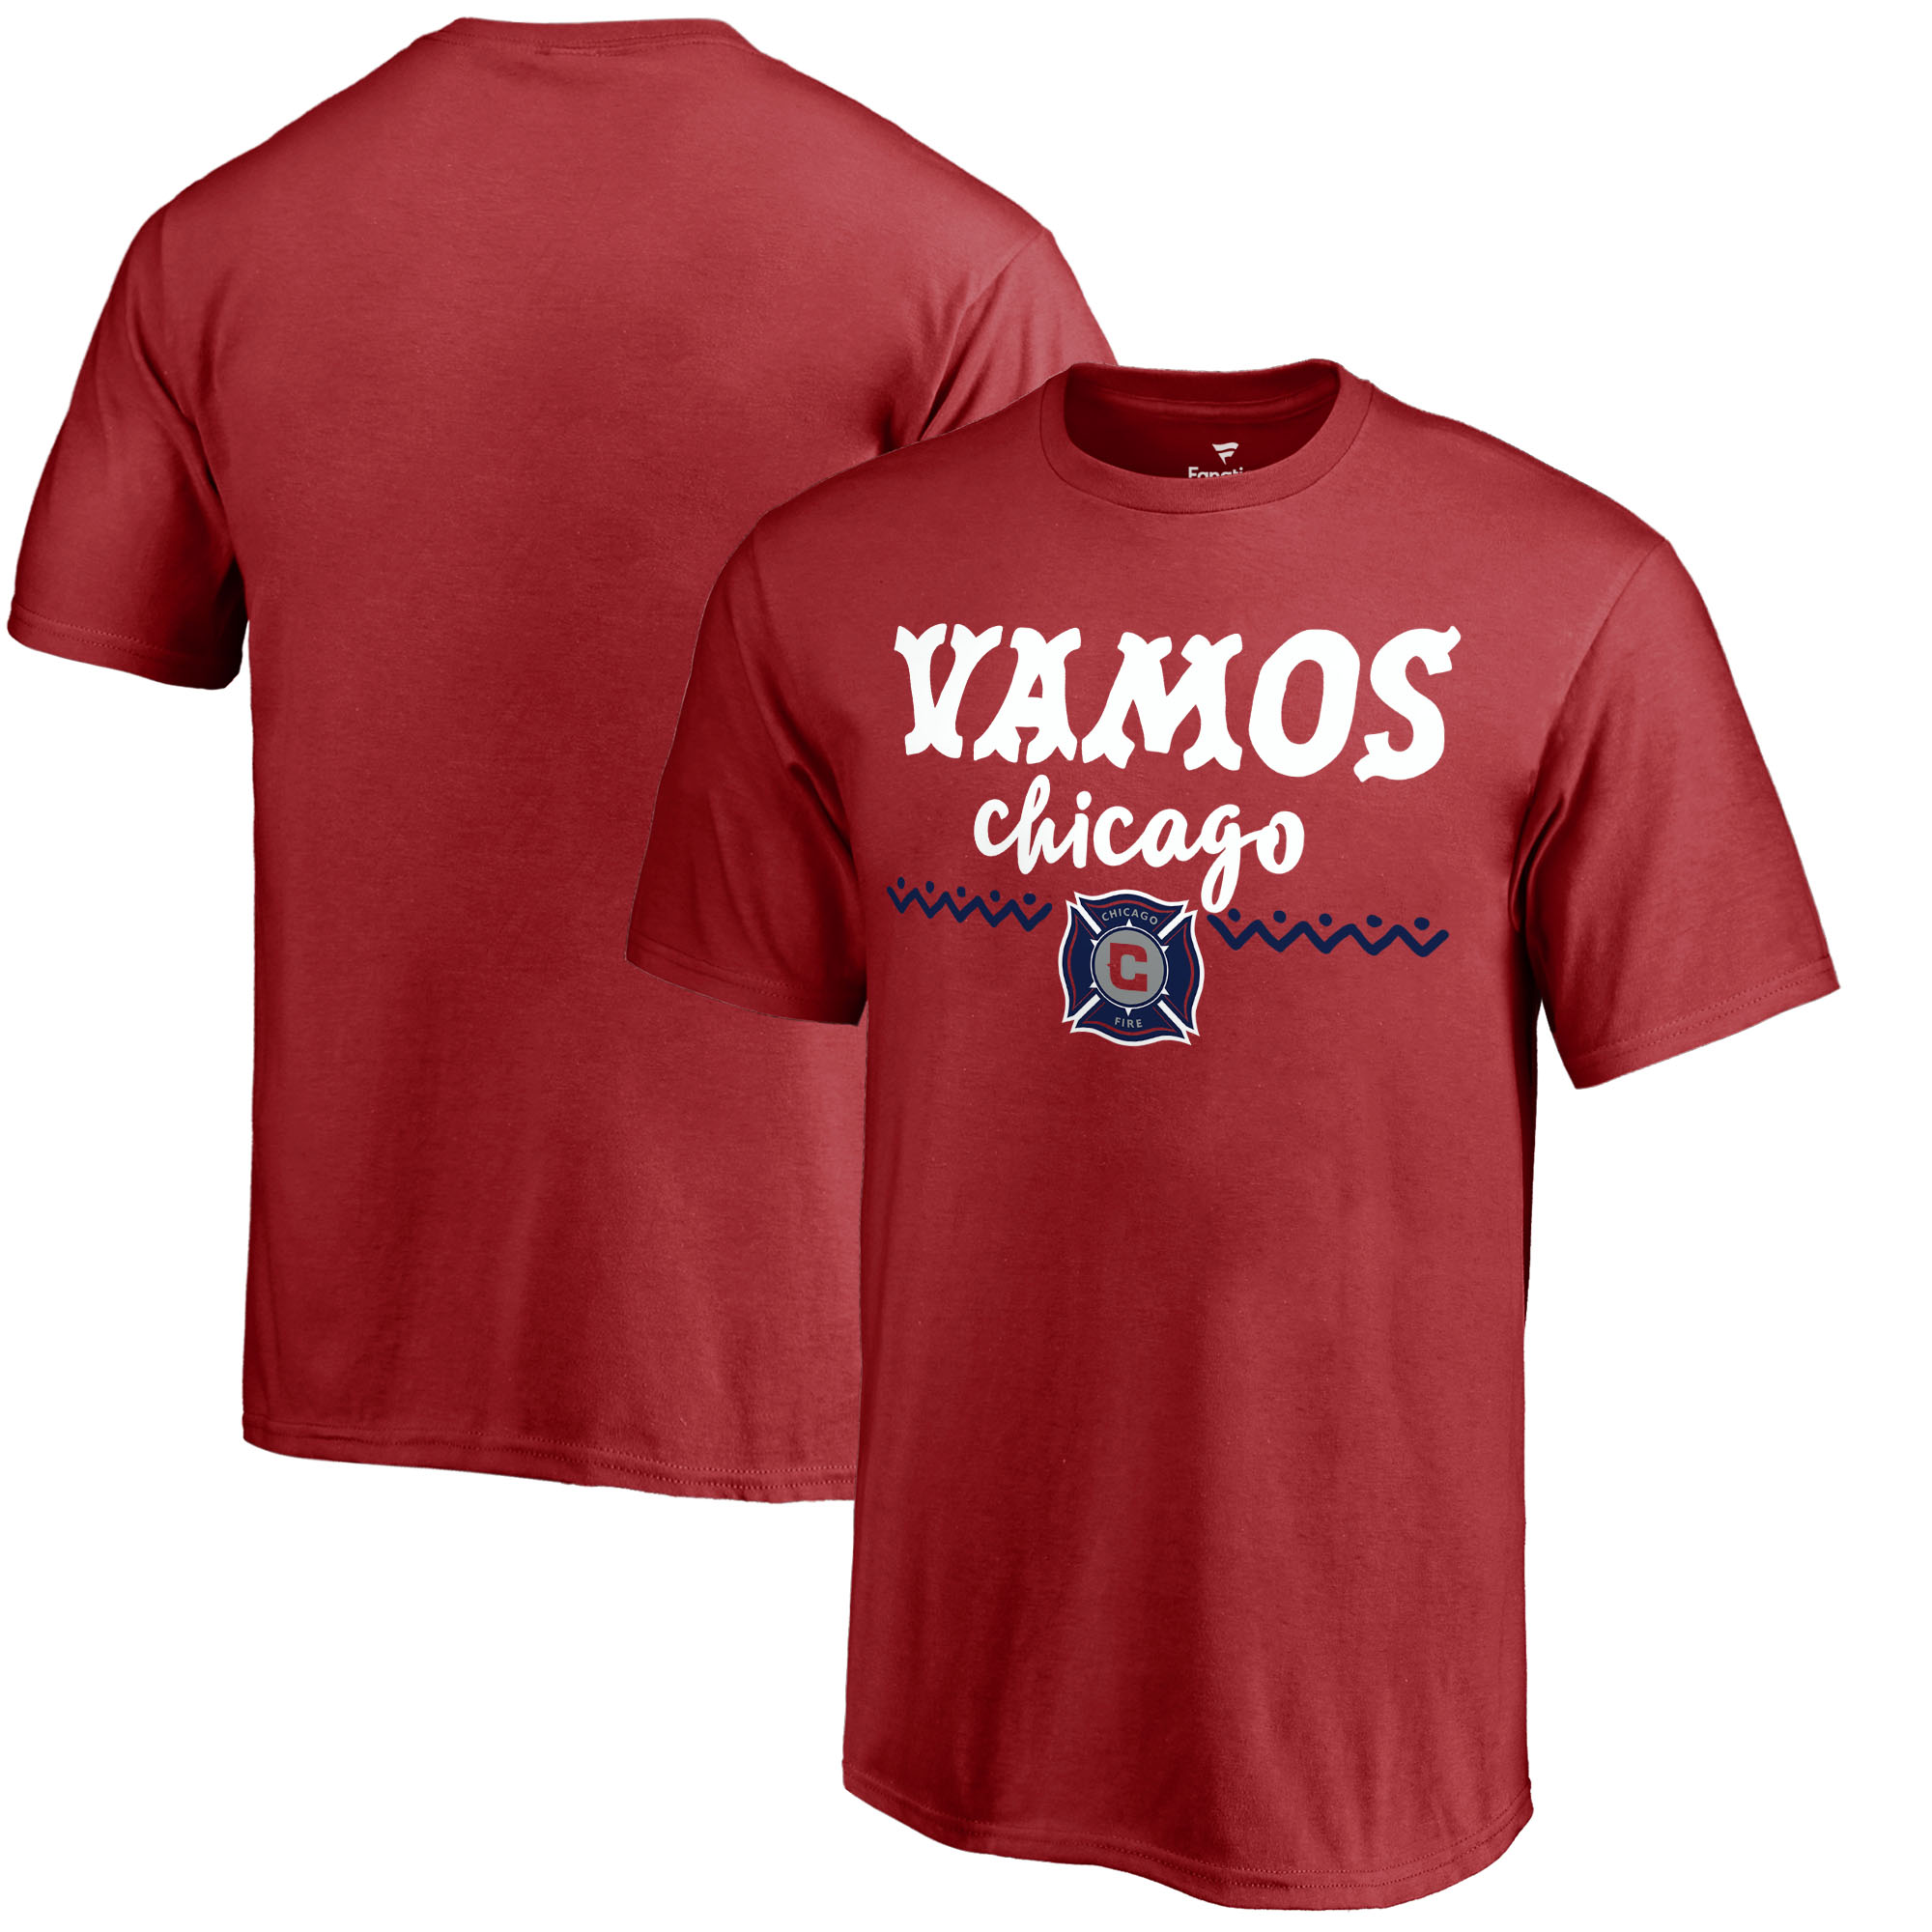 Chicago Fire Fanatics Branded Youth Hispanic Heritage Let's Go T-Shirt - Red